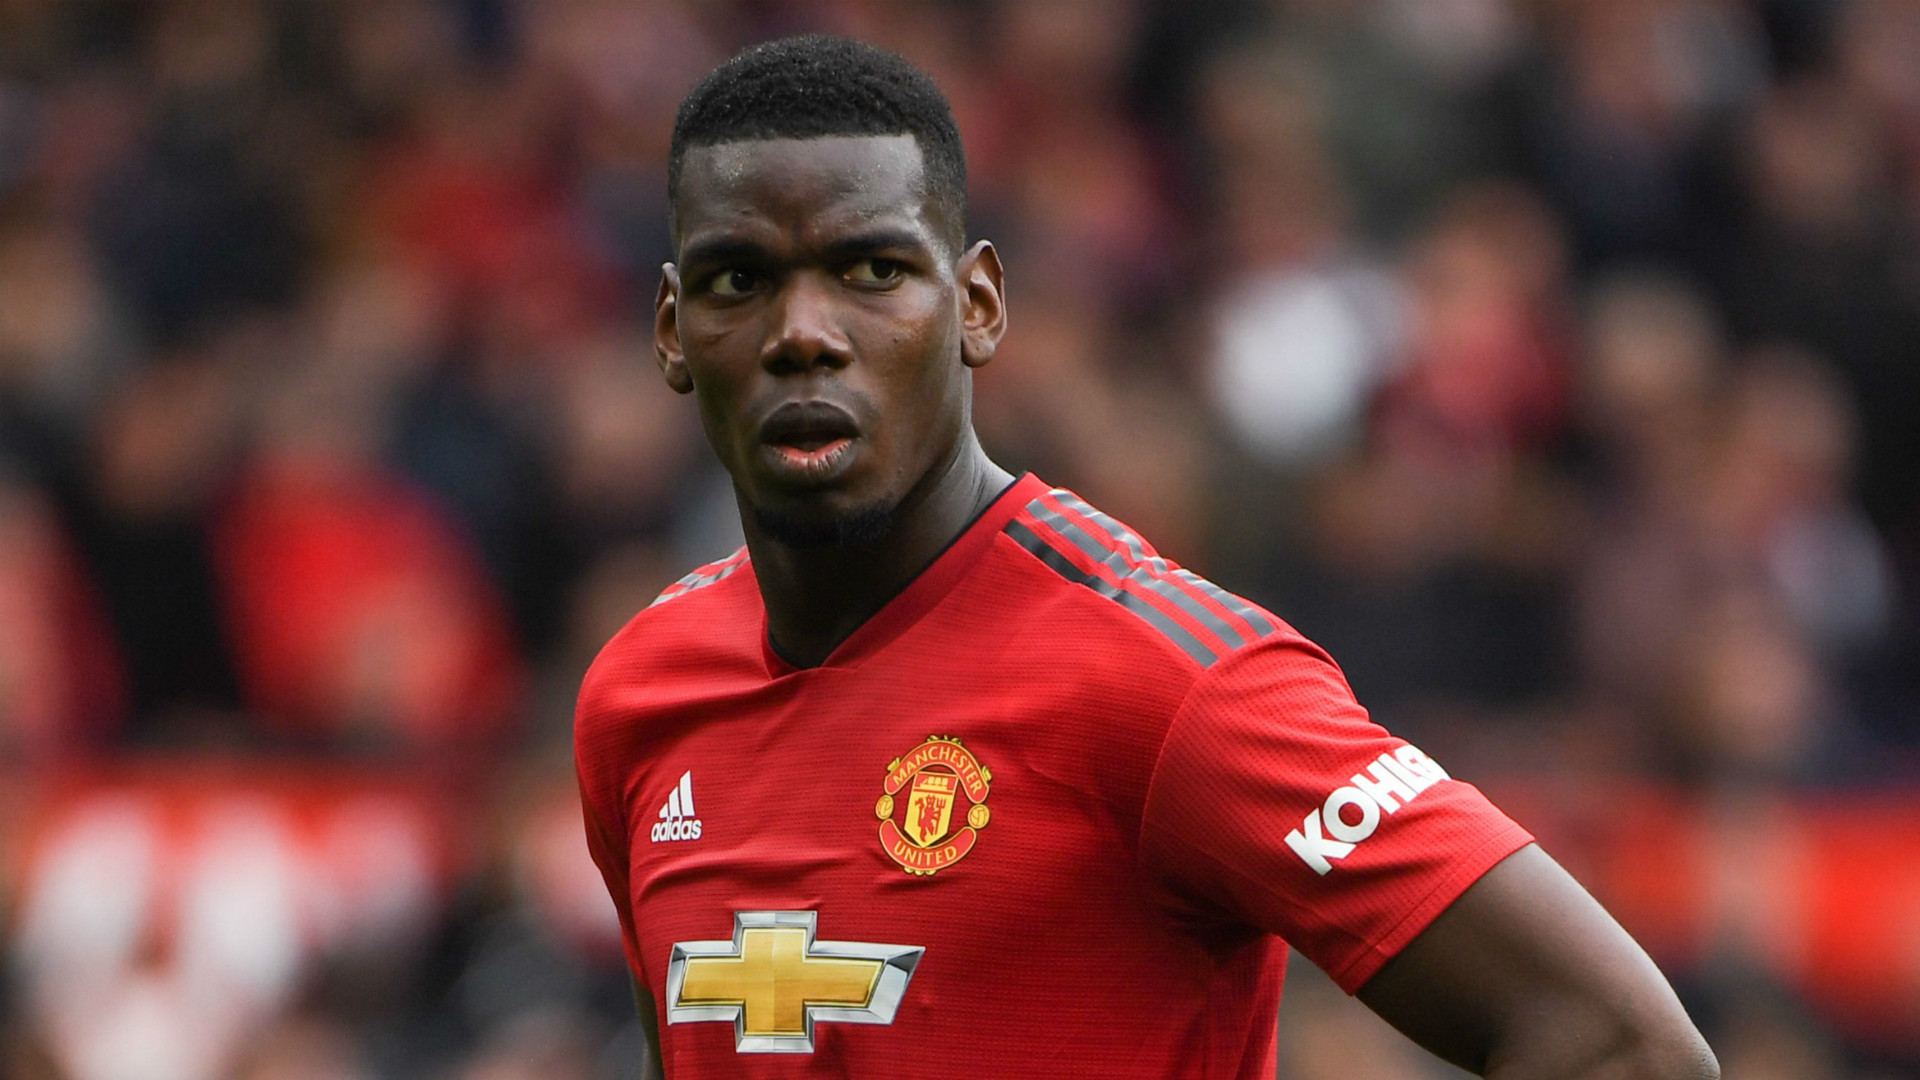 'Any great player has a place at Real Madrid' - Varane concedes Pogba move a 'possibility'